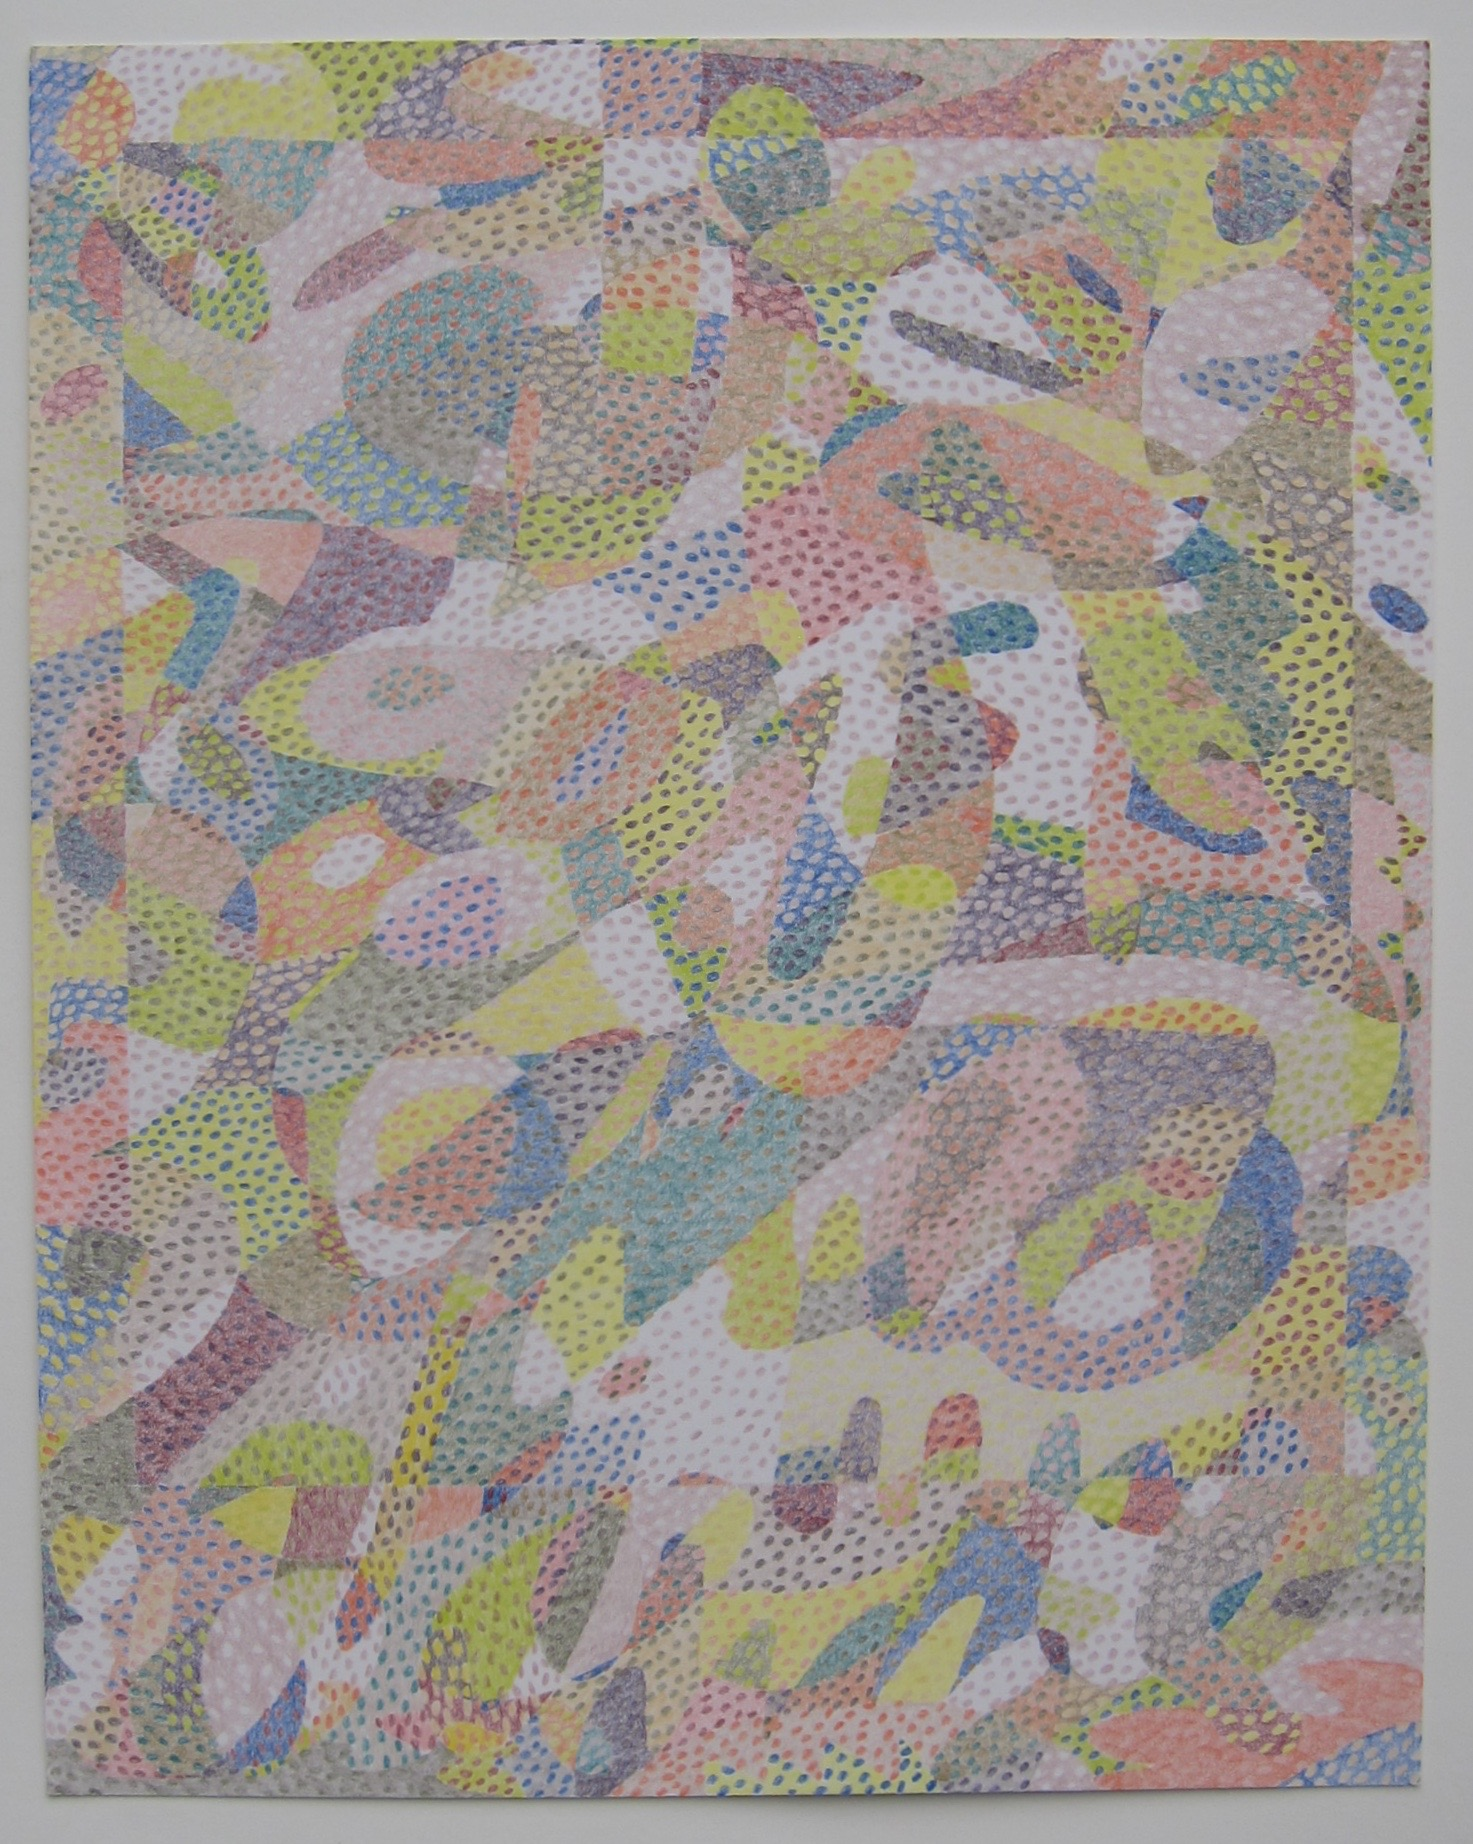 """Lg Drawing No. 3               2016 Colored pencil on paper 19"""" x 24"""" $3,200 (framed)"""